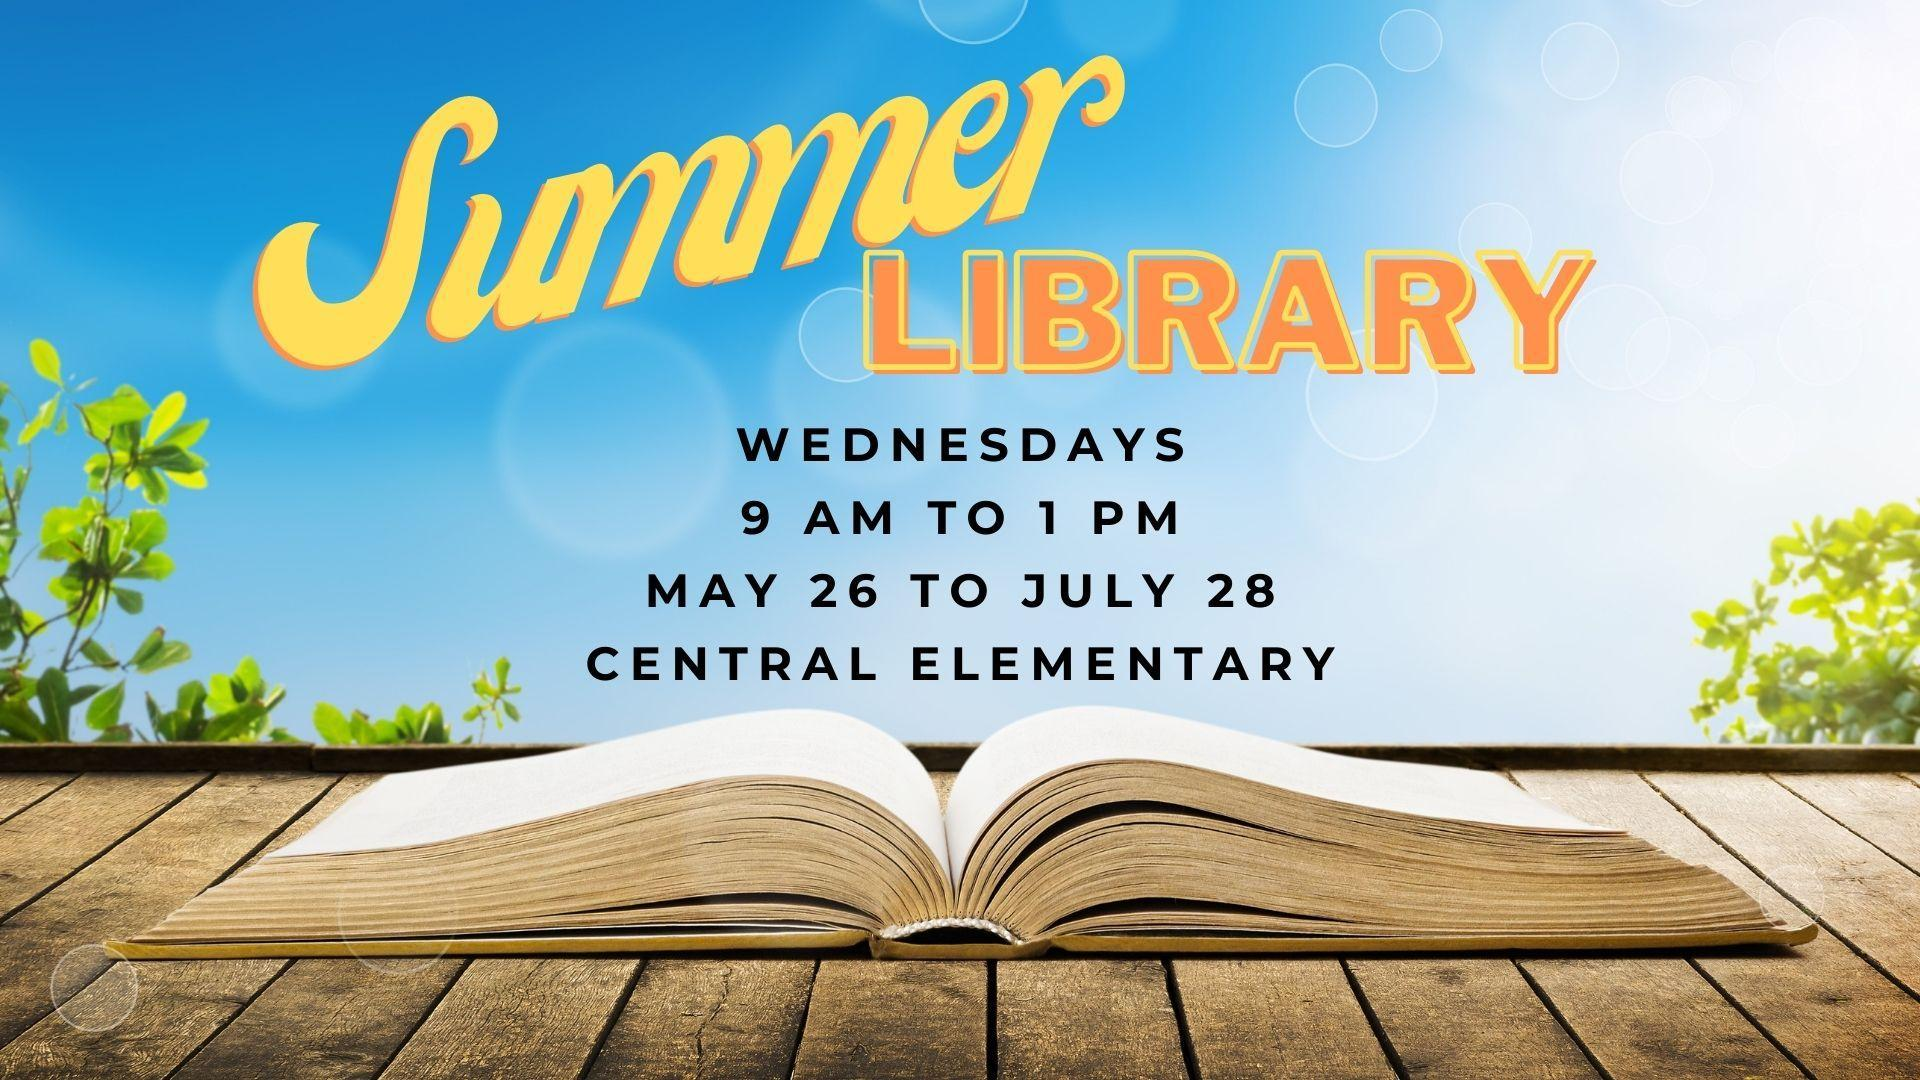 Summer Library - Wednesdays - 9 AM to 1 PM - May 26 to July 28 - Central Elementary Library